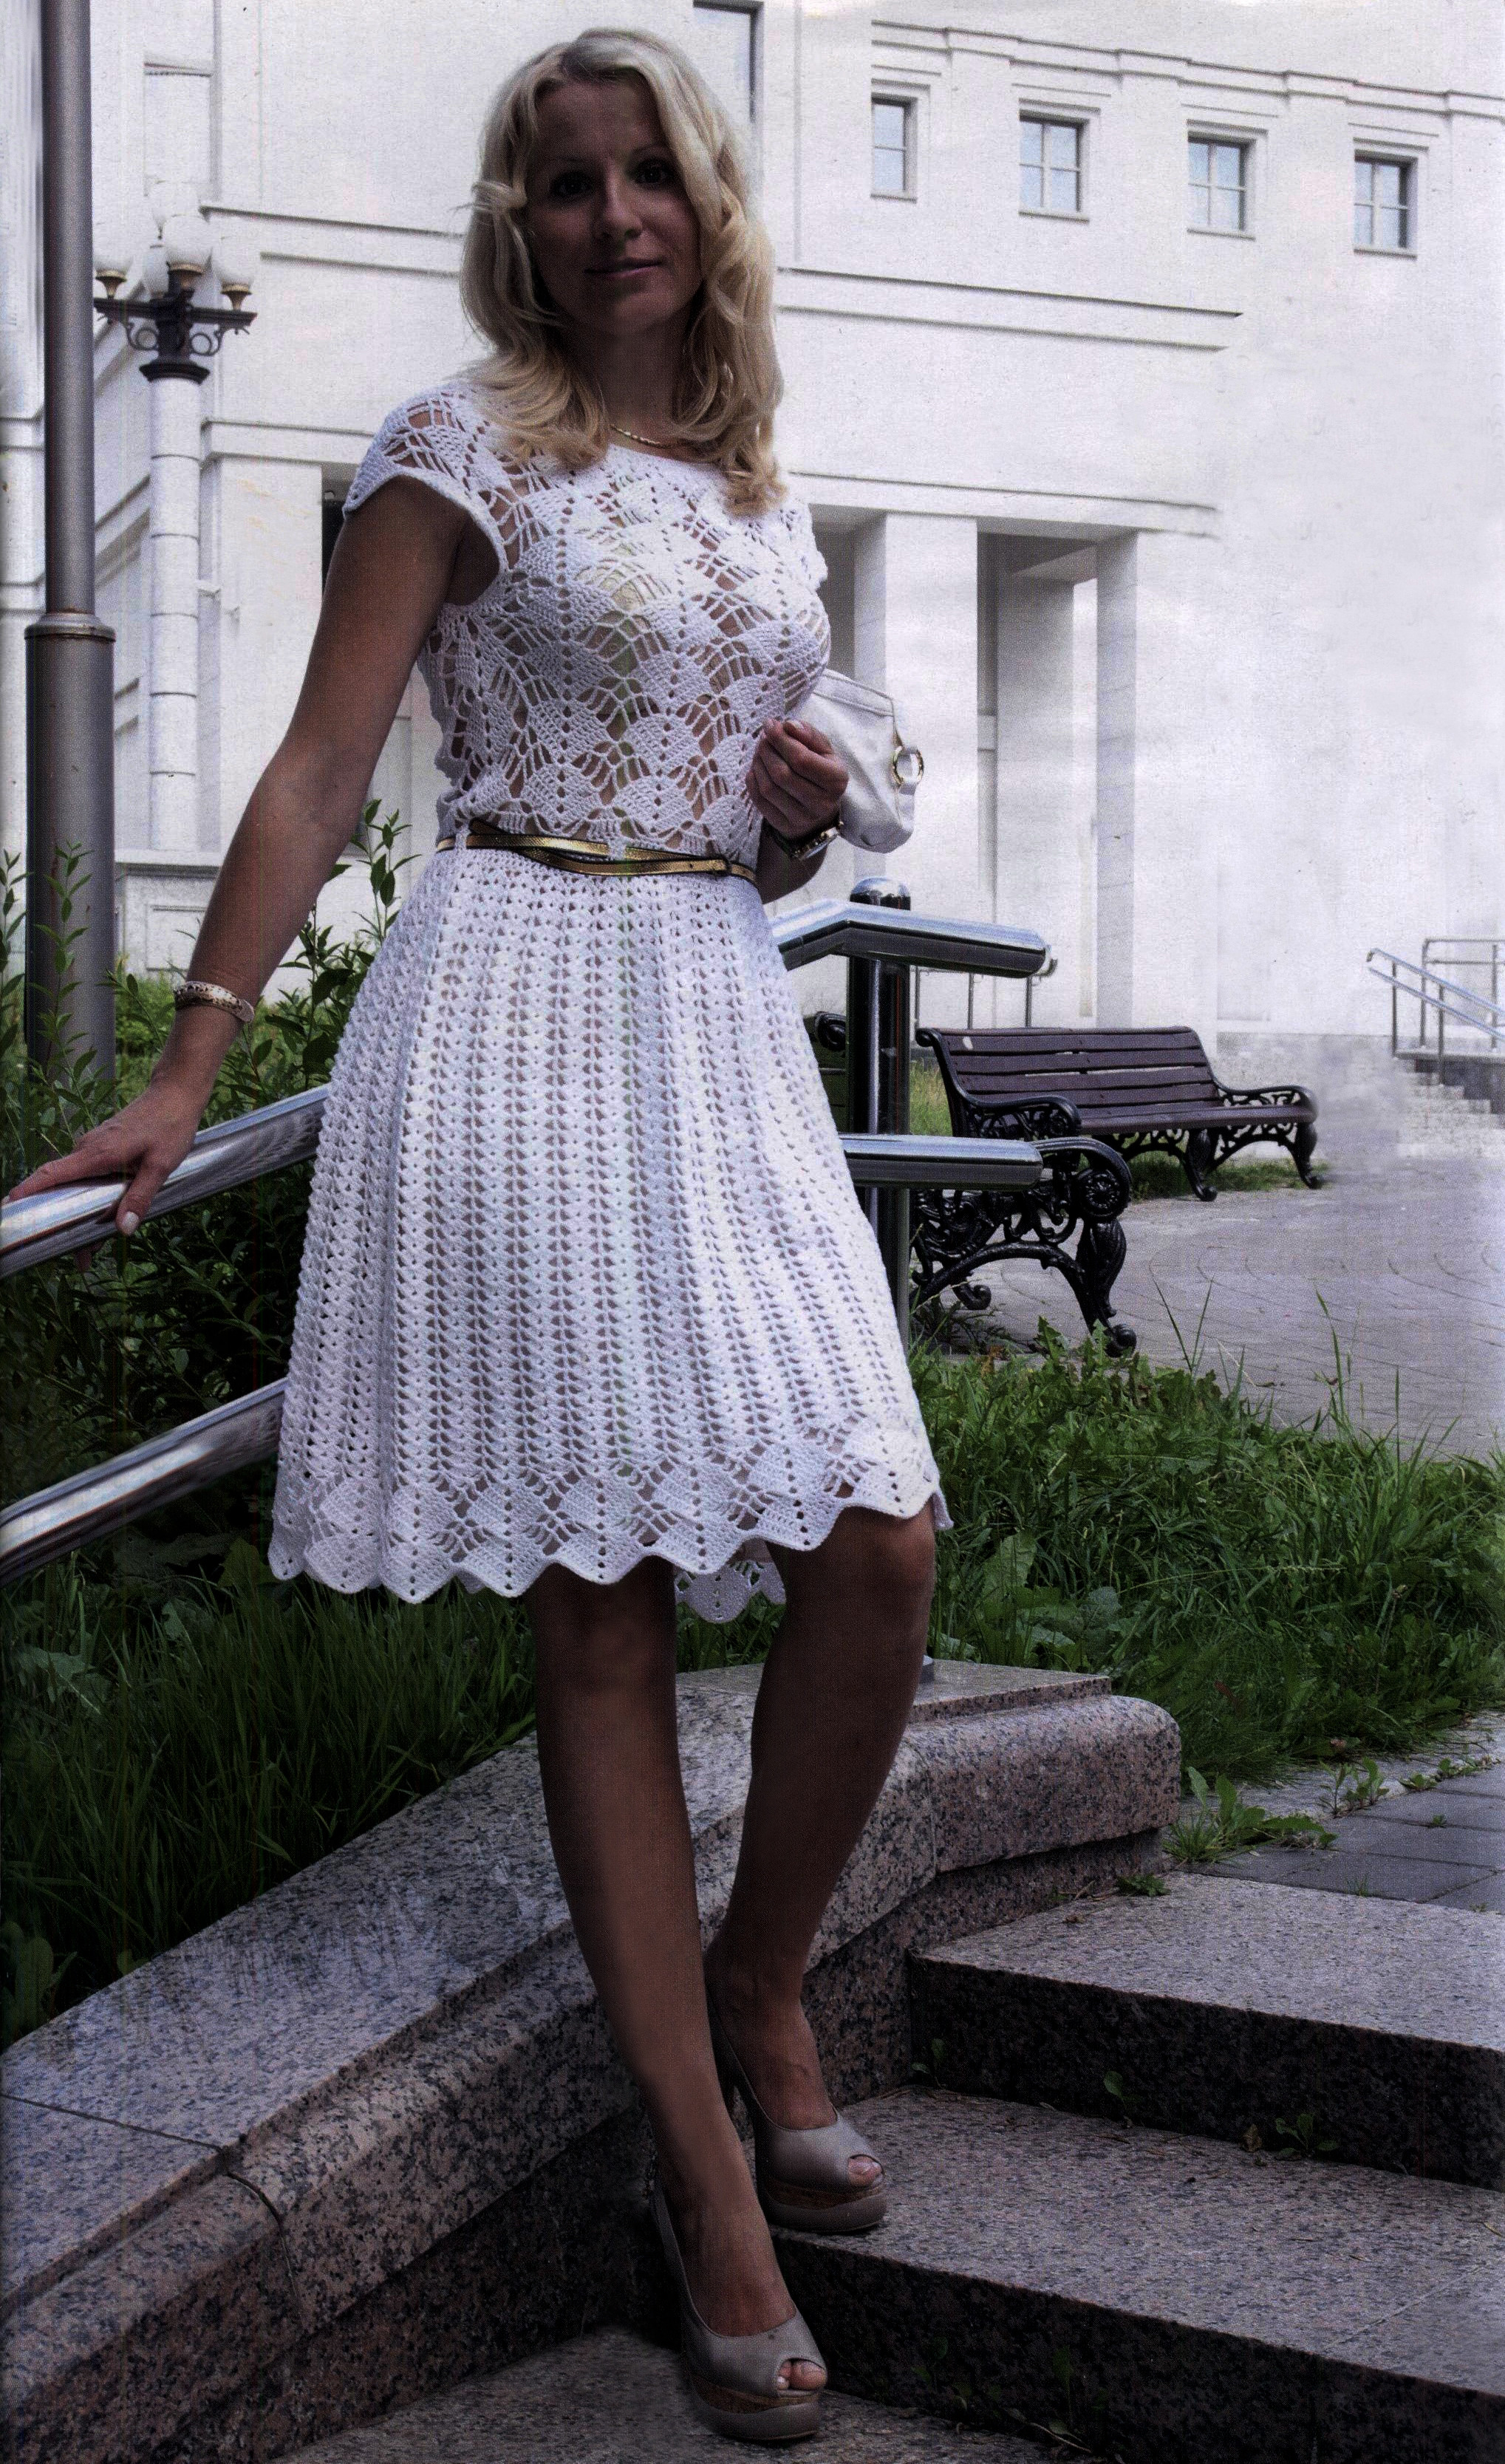 Crochet Wedding Dress Pattern Unique Pretty Crocheted Dresses and Skirts for Summer Of Charming 50 Pics Crochet Wedding Dress Pattern